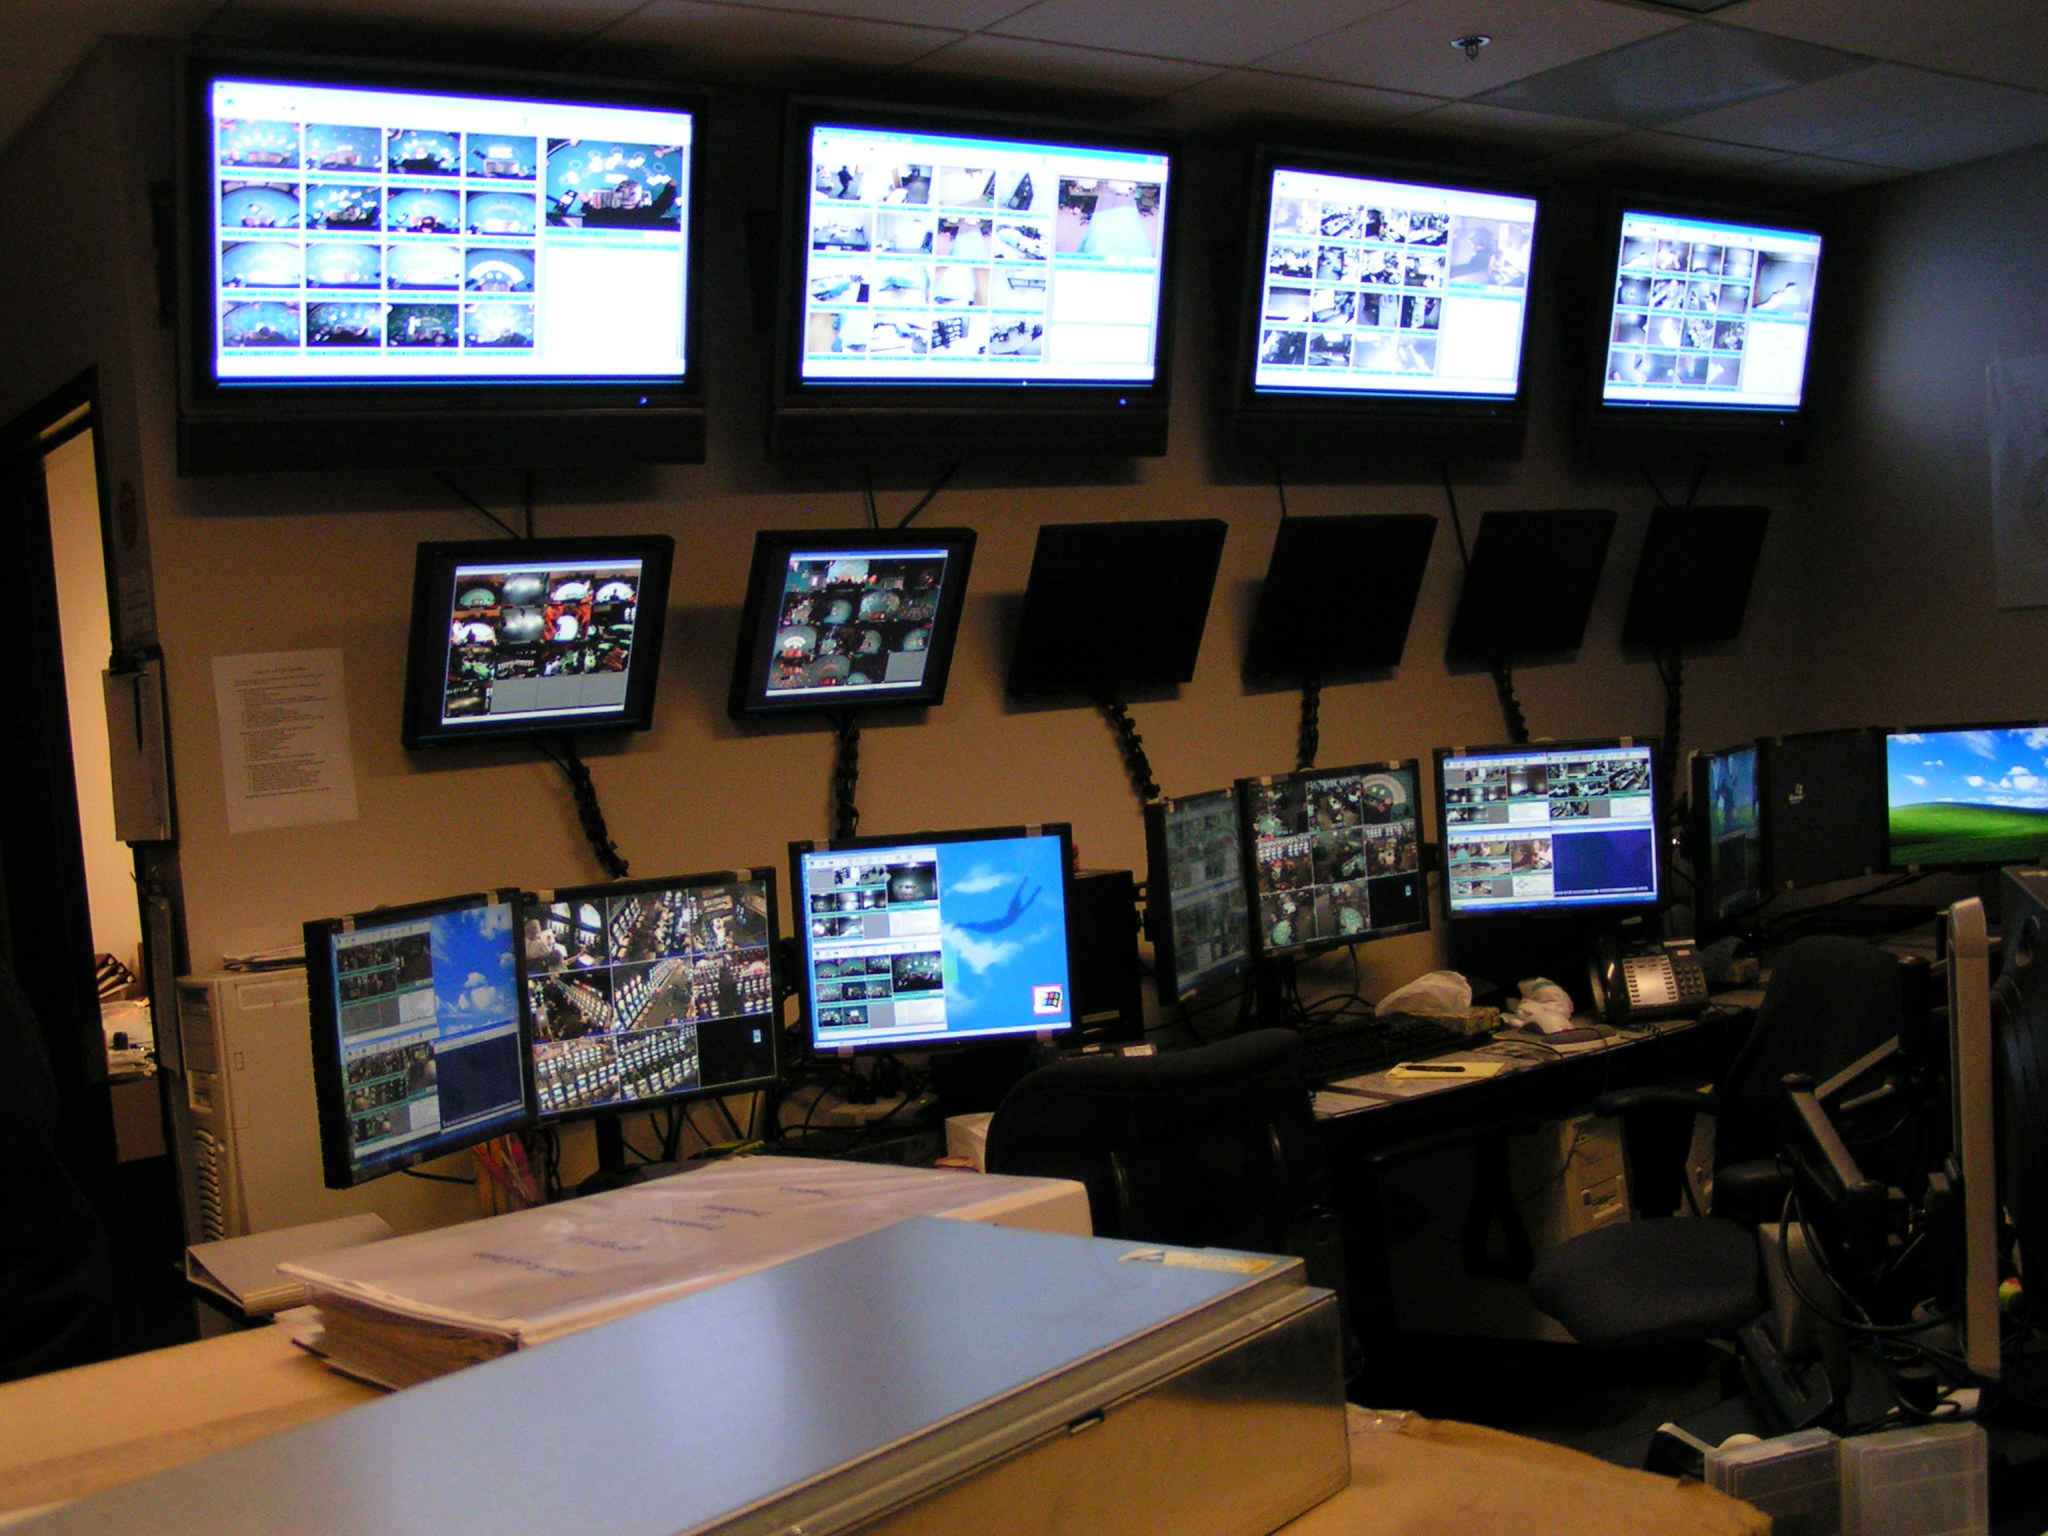 Monitoring Benefits From CCTV Surveillance for the Work Place - Image 1